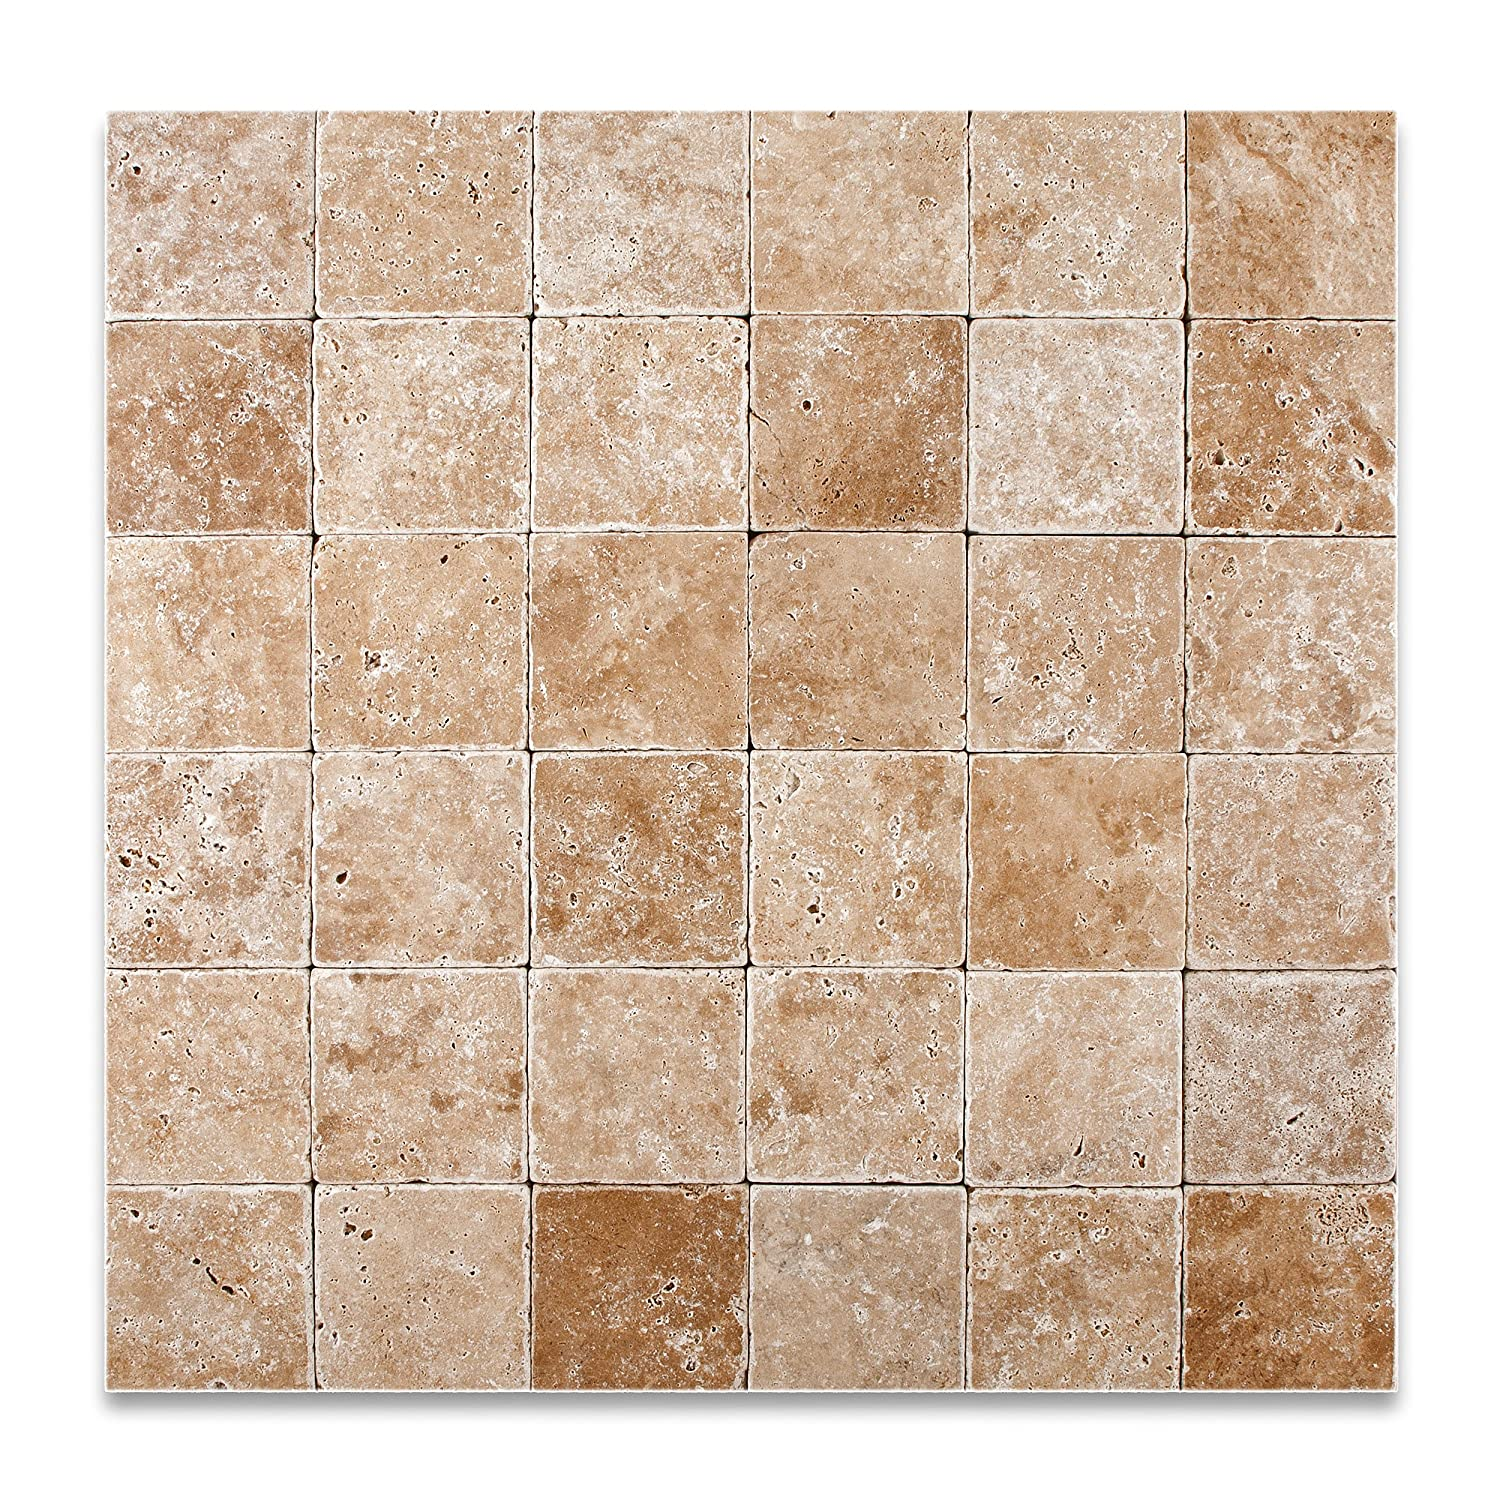 Walnut travertine 4 x 4 tumbled field tile 4 pcs sample set walnut travertine 4 x 4 tumbled field tile 4 pcs sample set marble tiles amazon dailygadgetfo Gallery